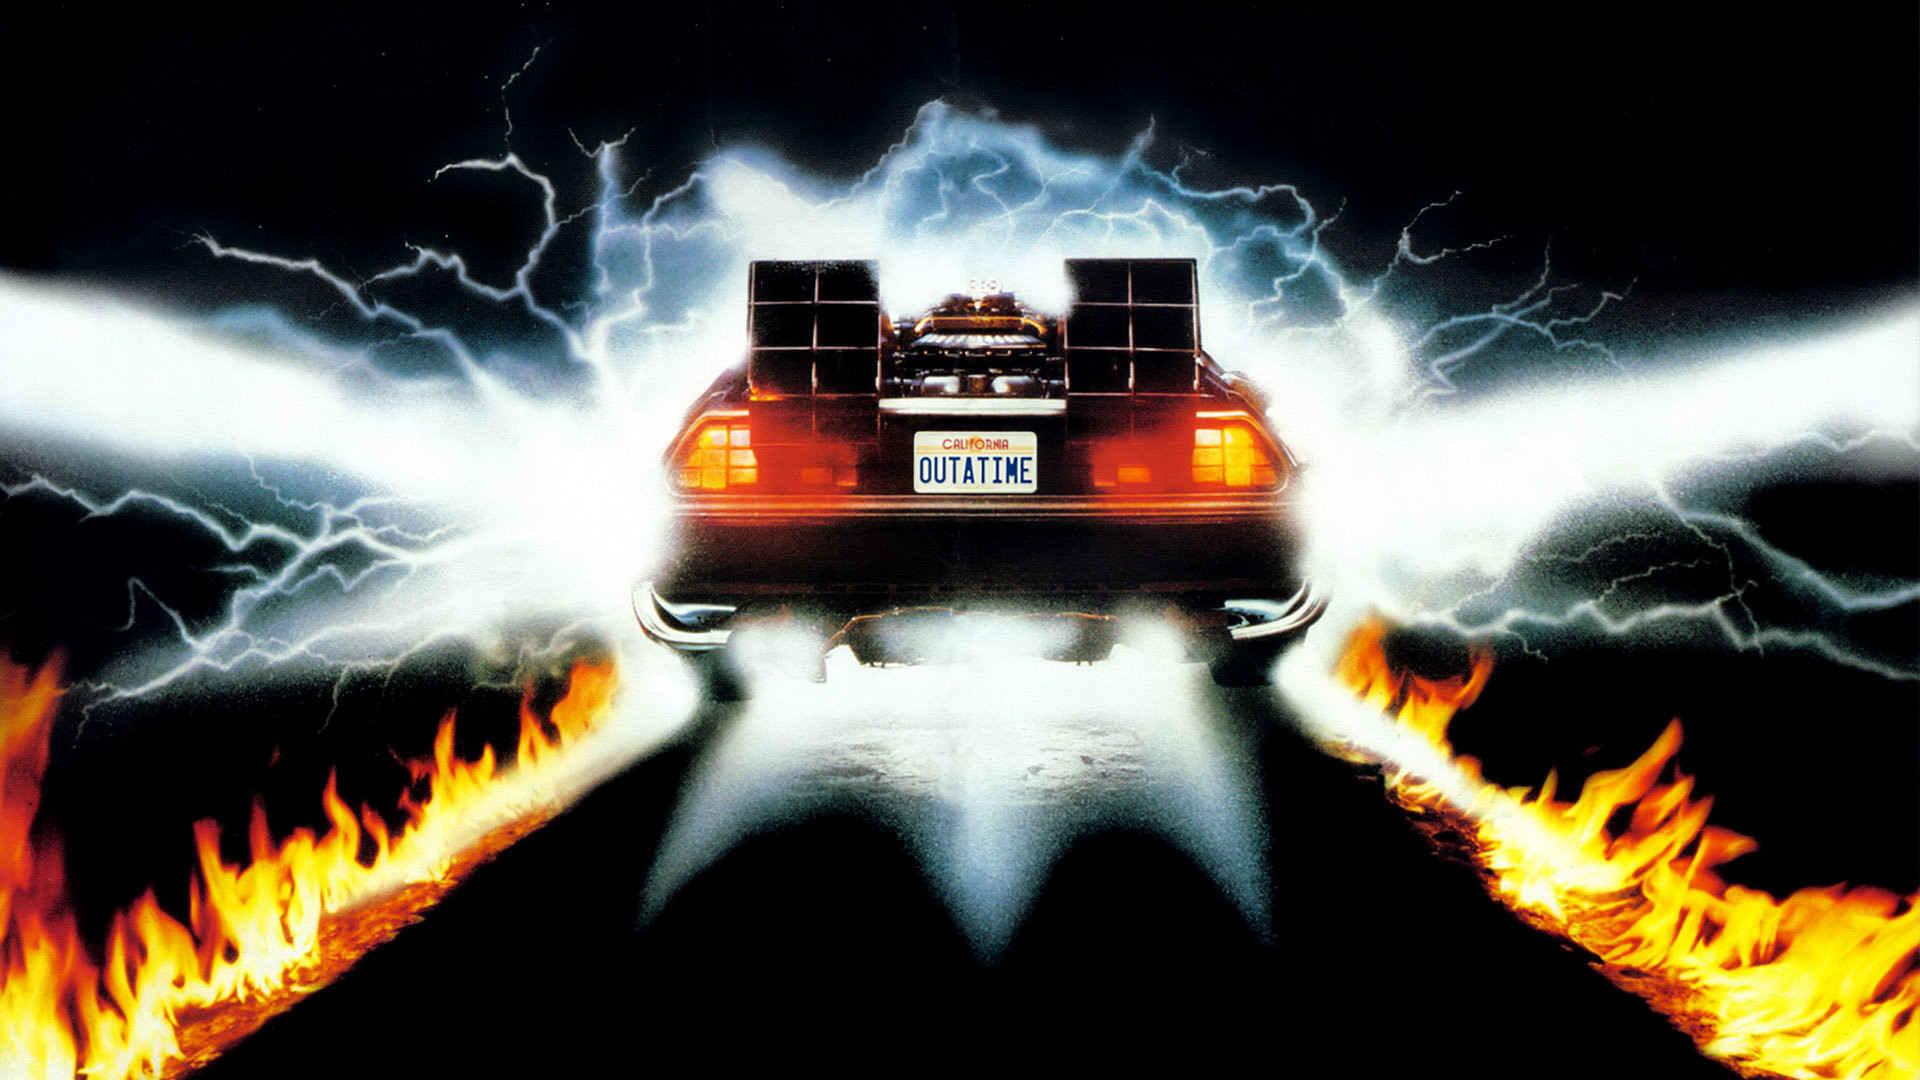 http://www.scififx.com/wp-content/uploads/2013/04/back-to-the-future-delorean.jpg